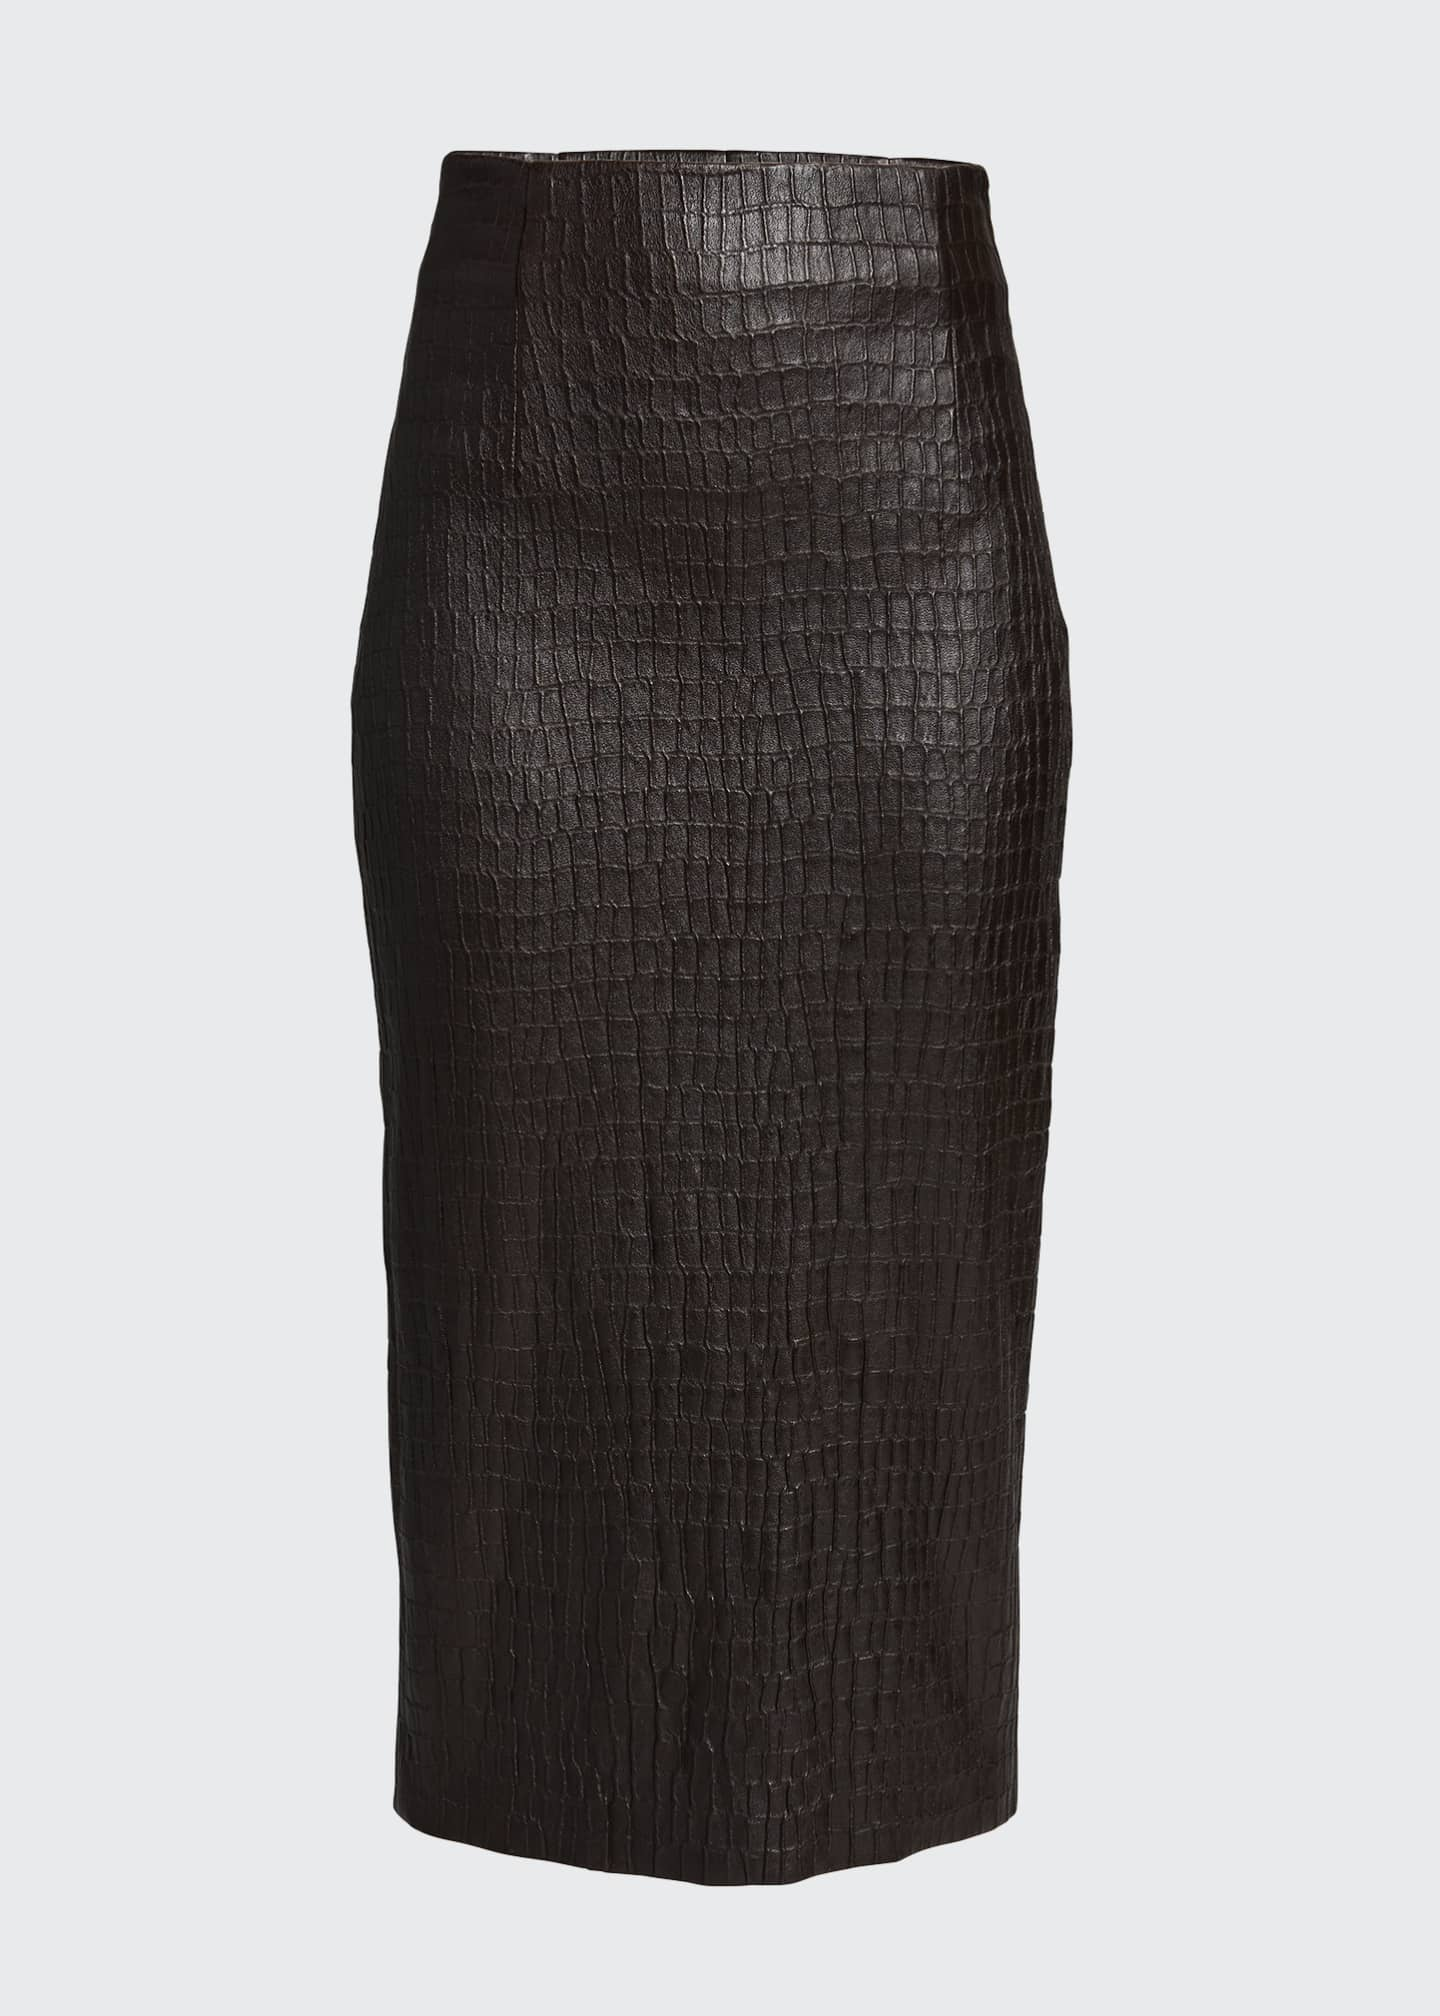 Image 5 of 5: Croc-Embossed Leather Pencil Skirt